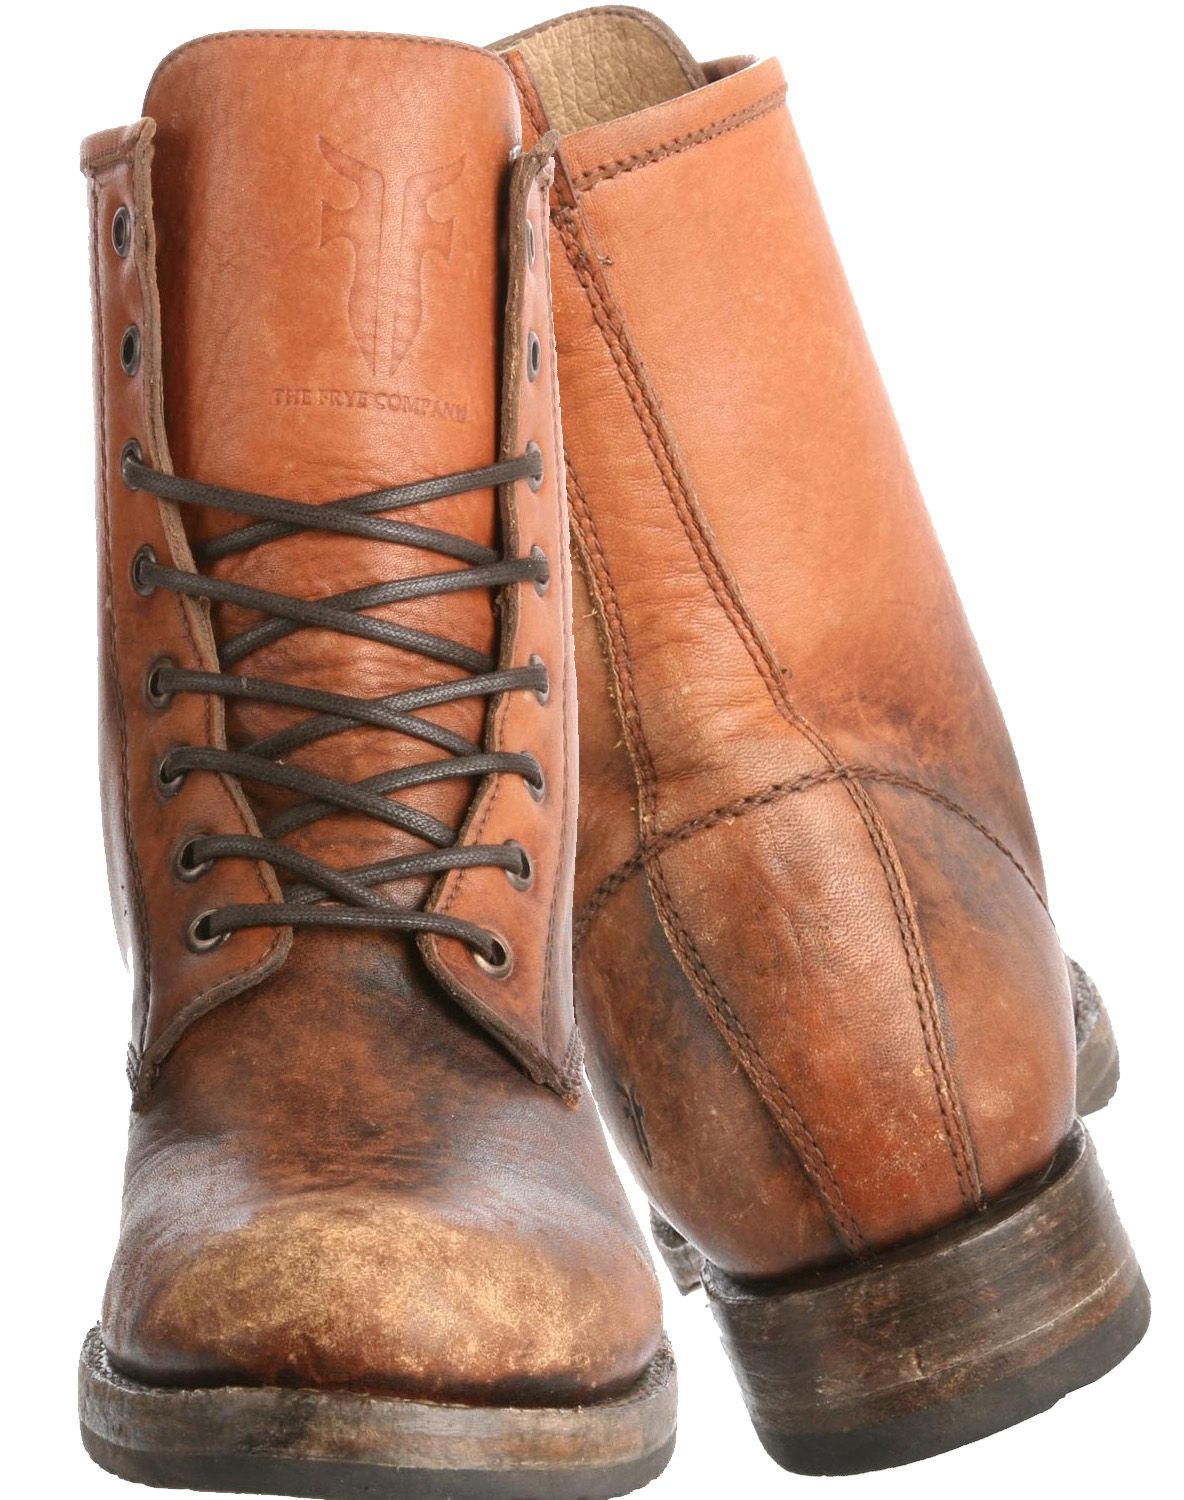 2e63799b7ab FRYE Veronica Combat Boots the best boots ever? | Boots & Shoes ...